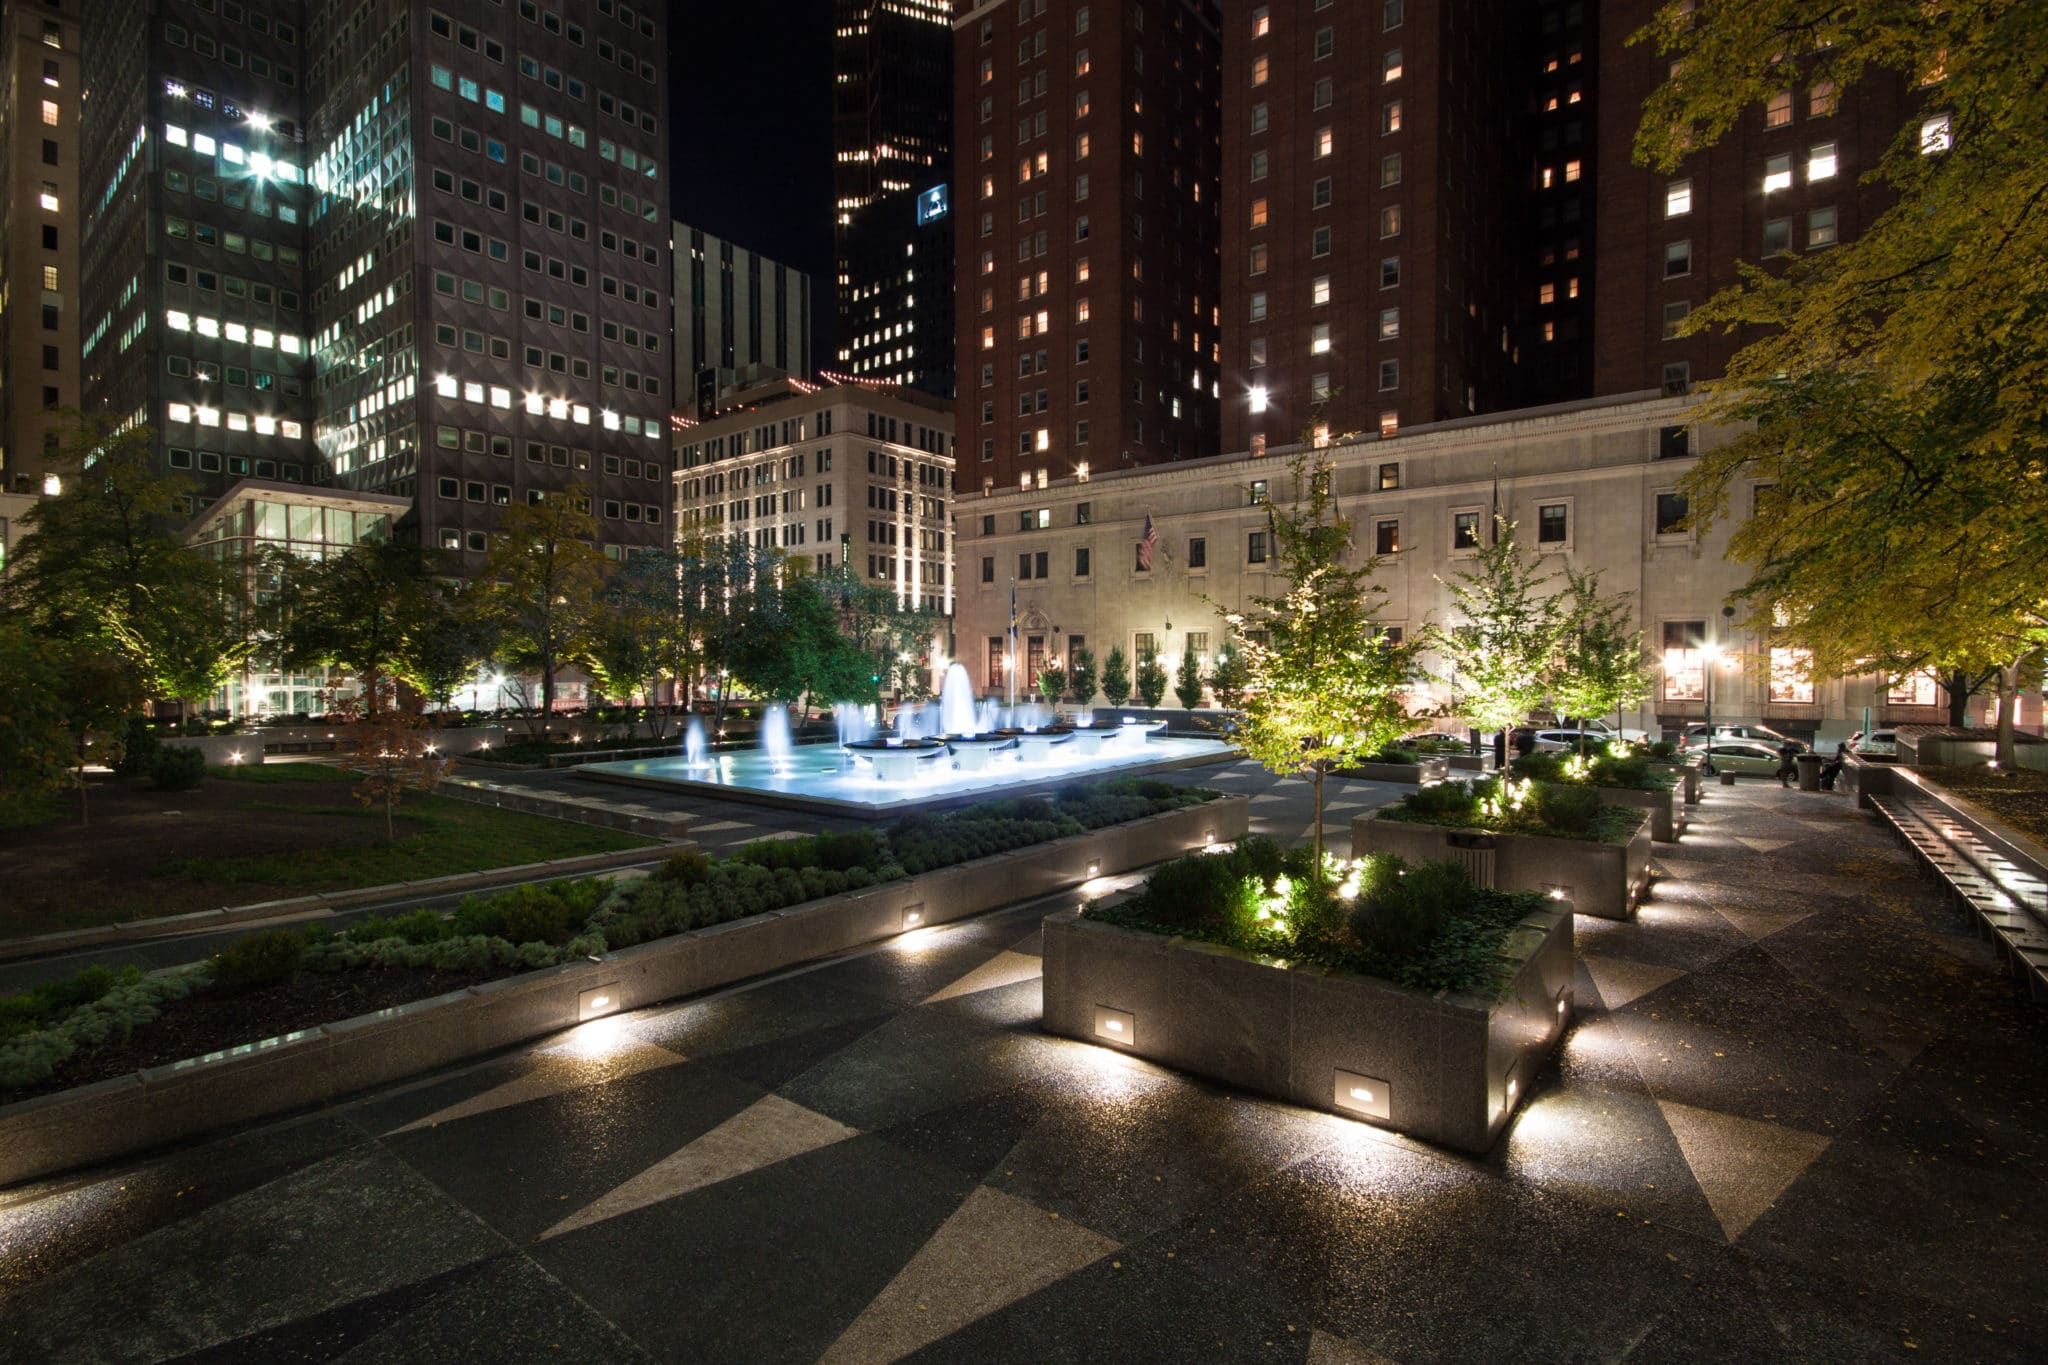 Mellon Square Park fountains at night